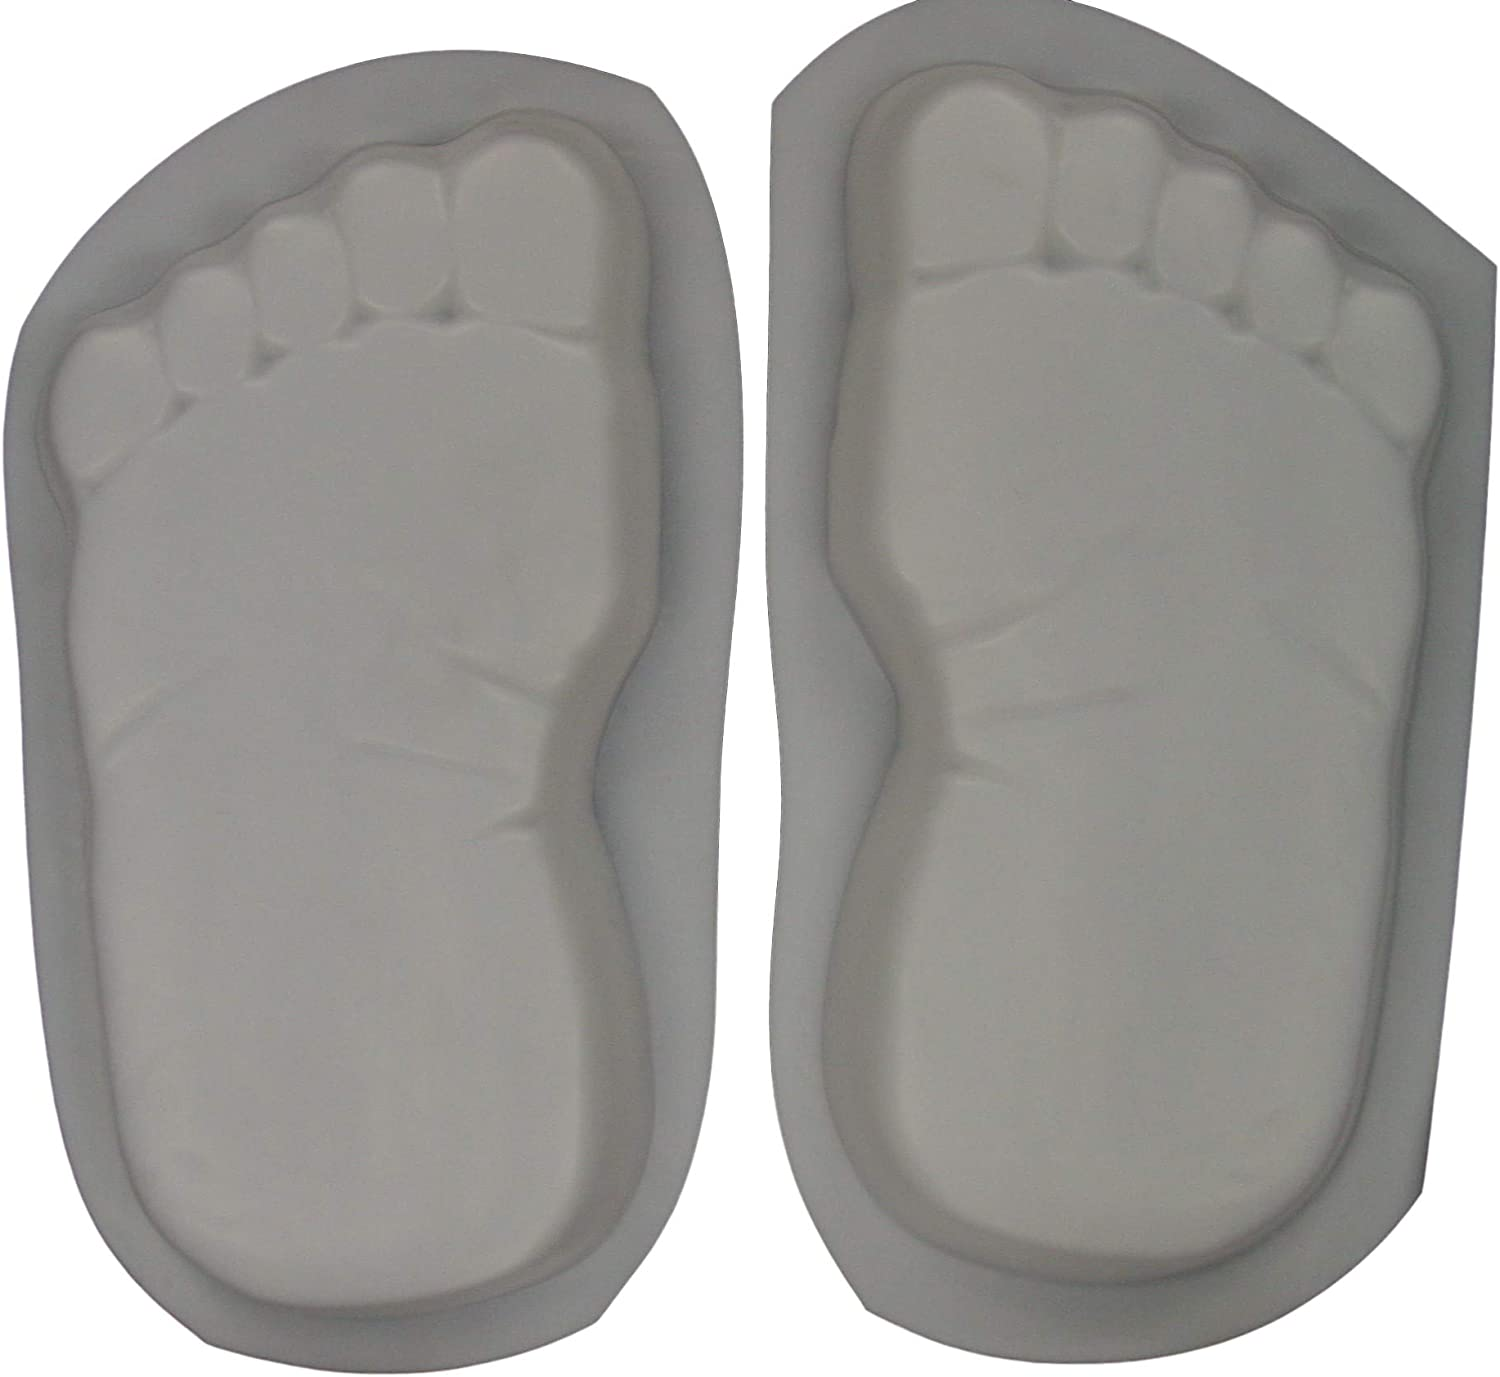 Huge 16 Inch Ultra-Cheap Deals Footprints Bare Feet Stepping Stone S Concrete Mold Super Special SALE held